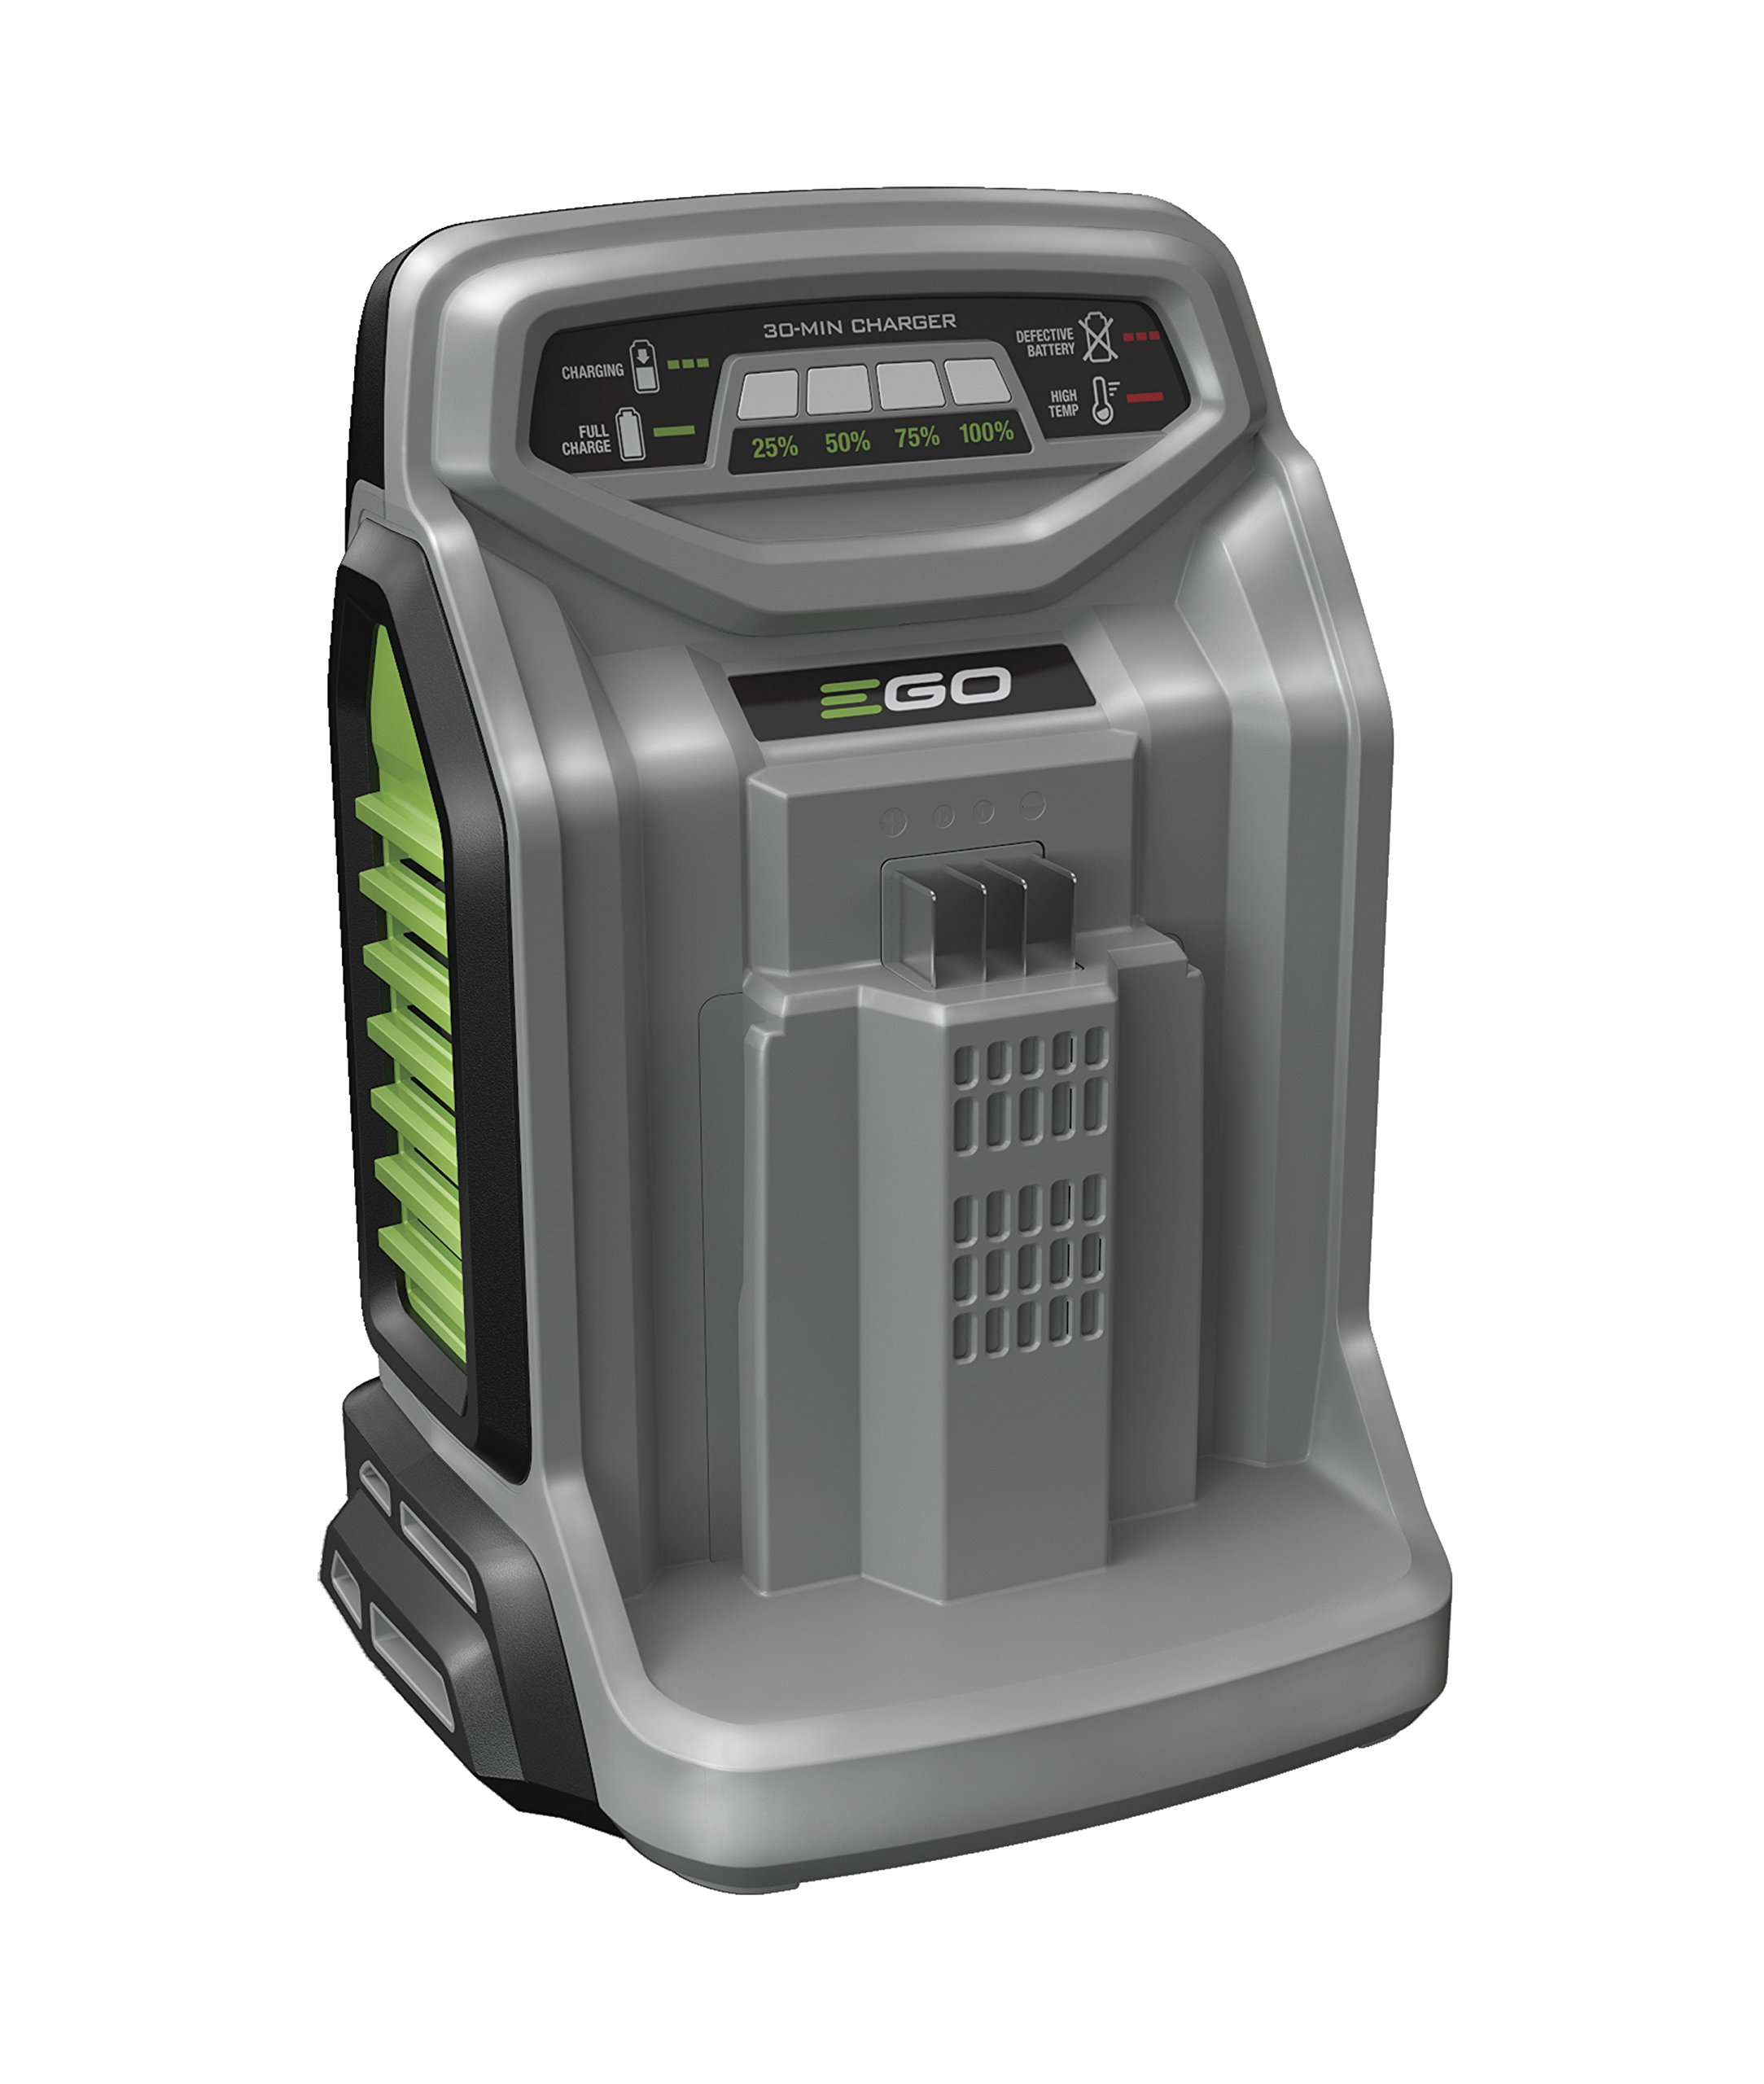 EGO Power+ CH5500 56-Volt Lithium-ion Rapid Charger by EGO Power+